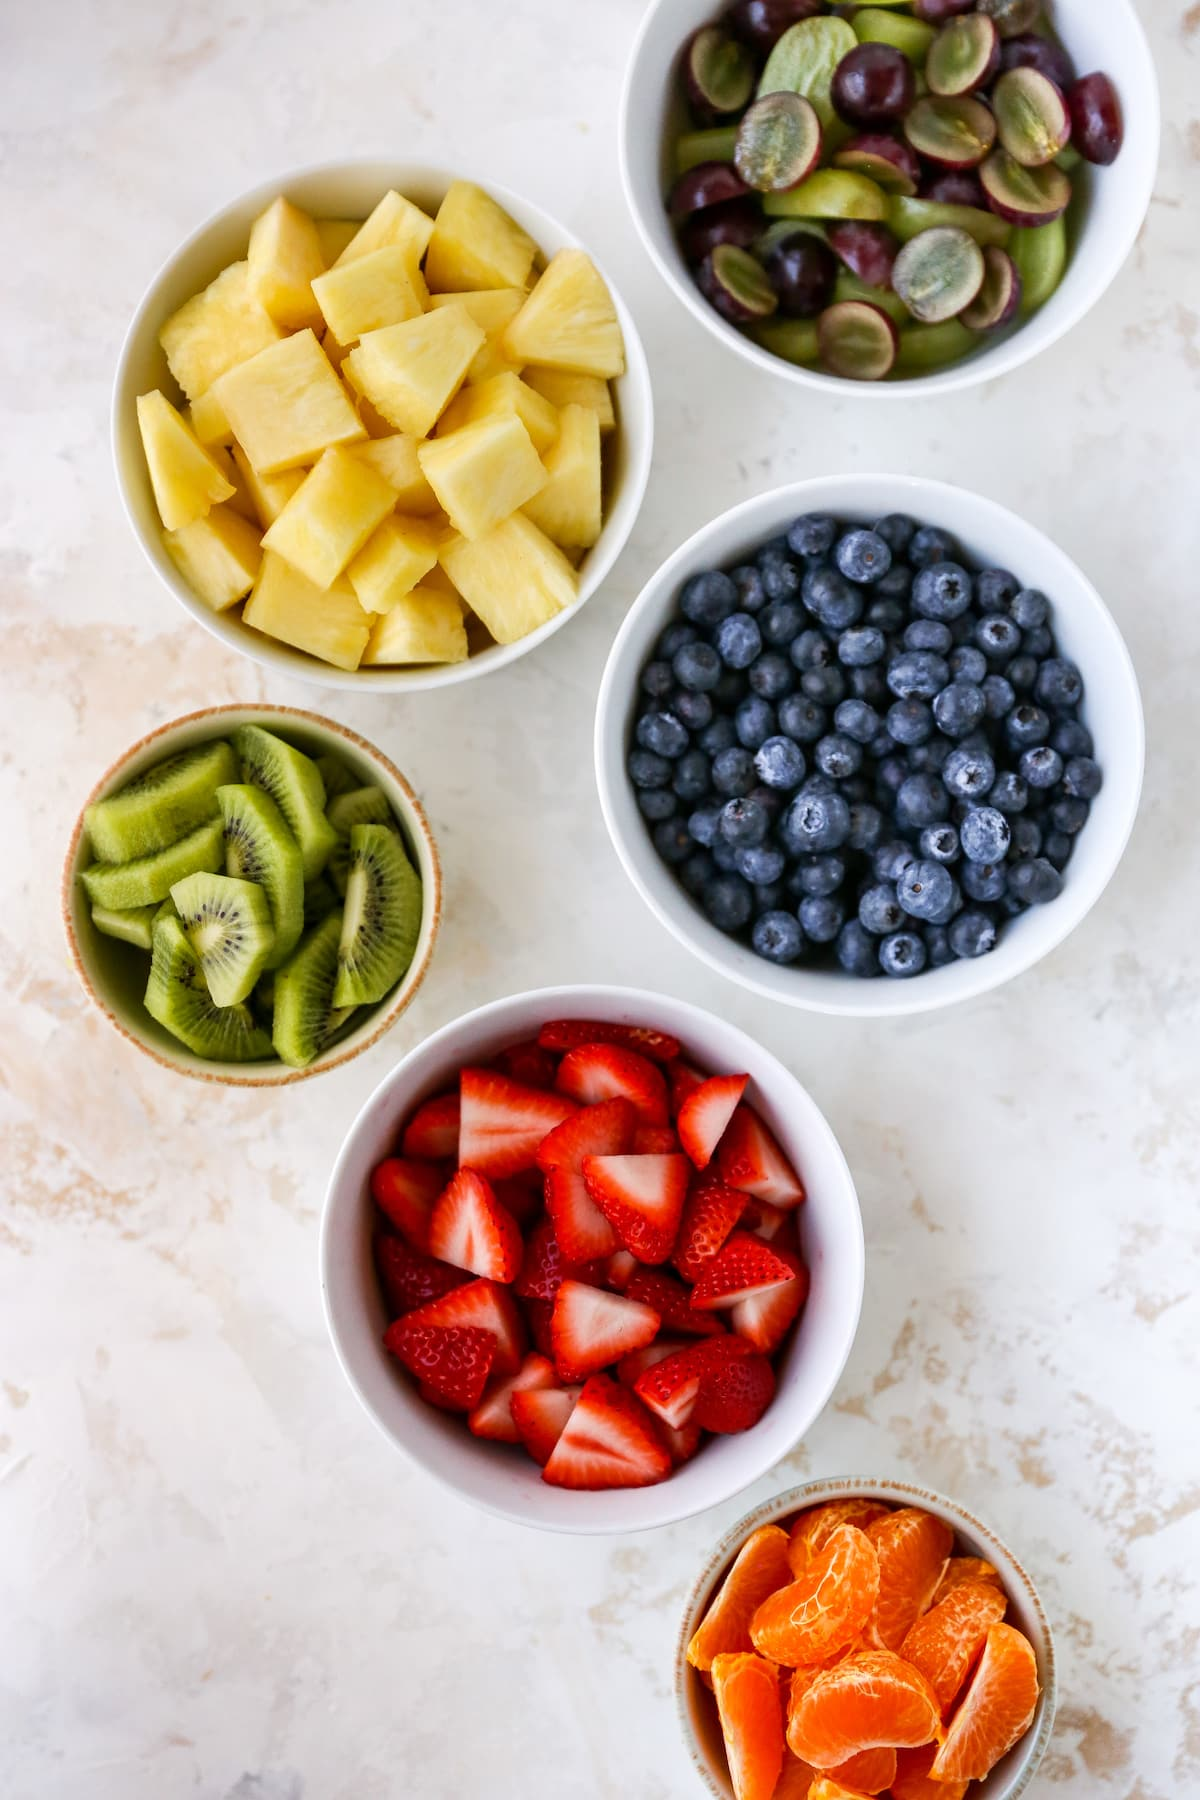 Separate bowls of grapes, pineapple, blueberries, kiwi, strawberries and clementine segments.